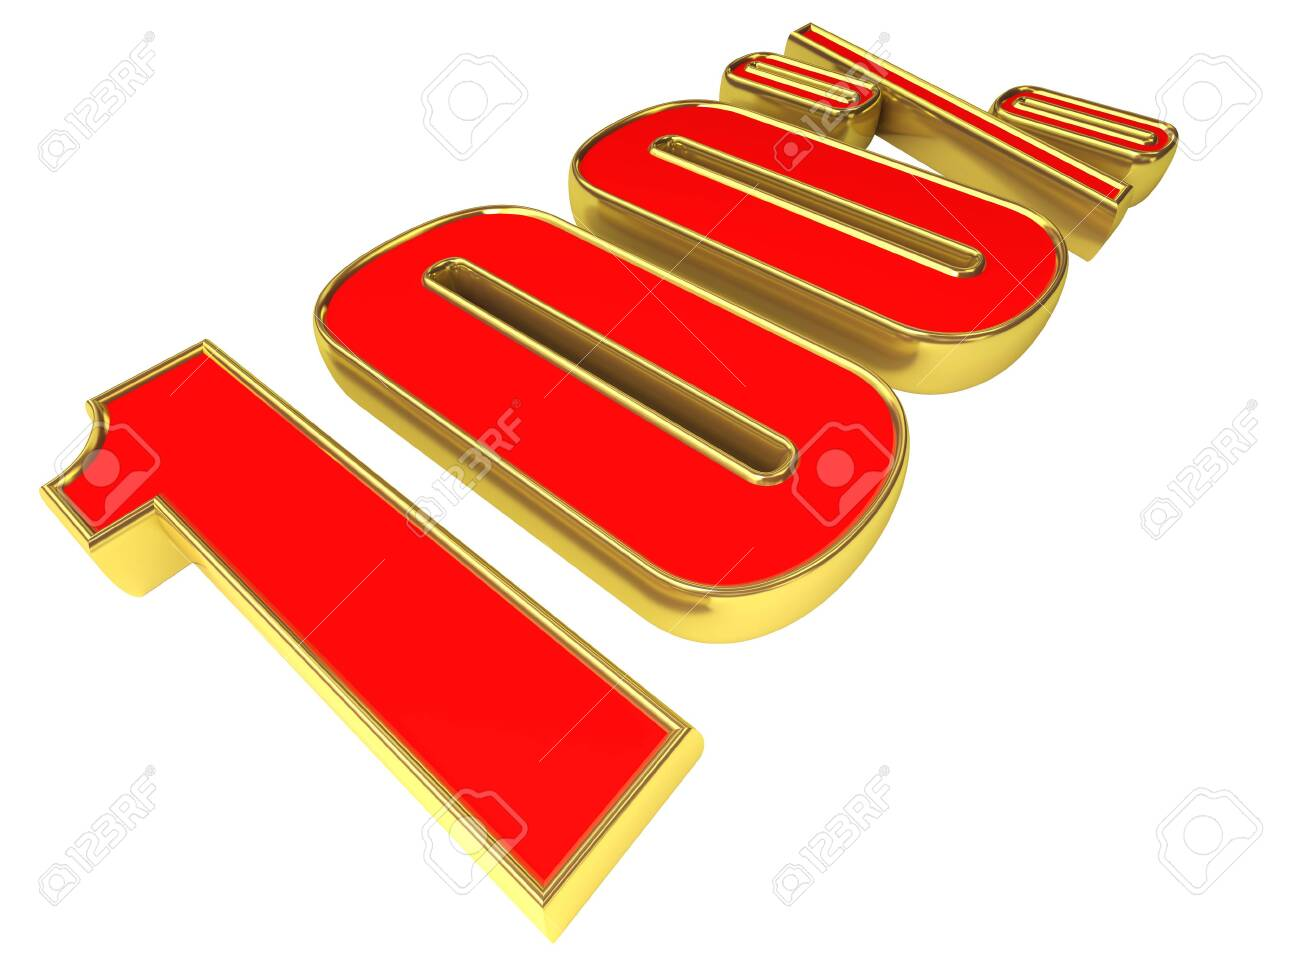 Gold-red 100 percent isolated on white background. Stock Photo - 8762277